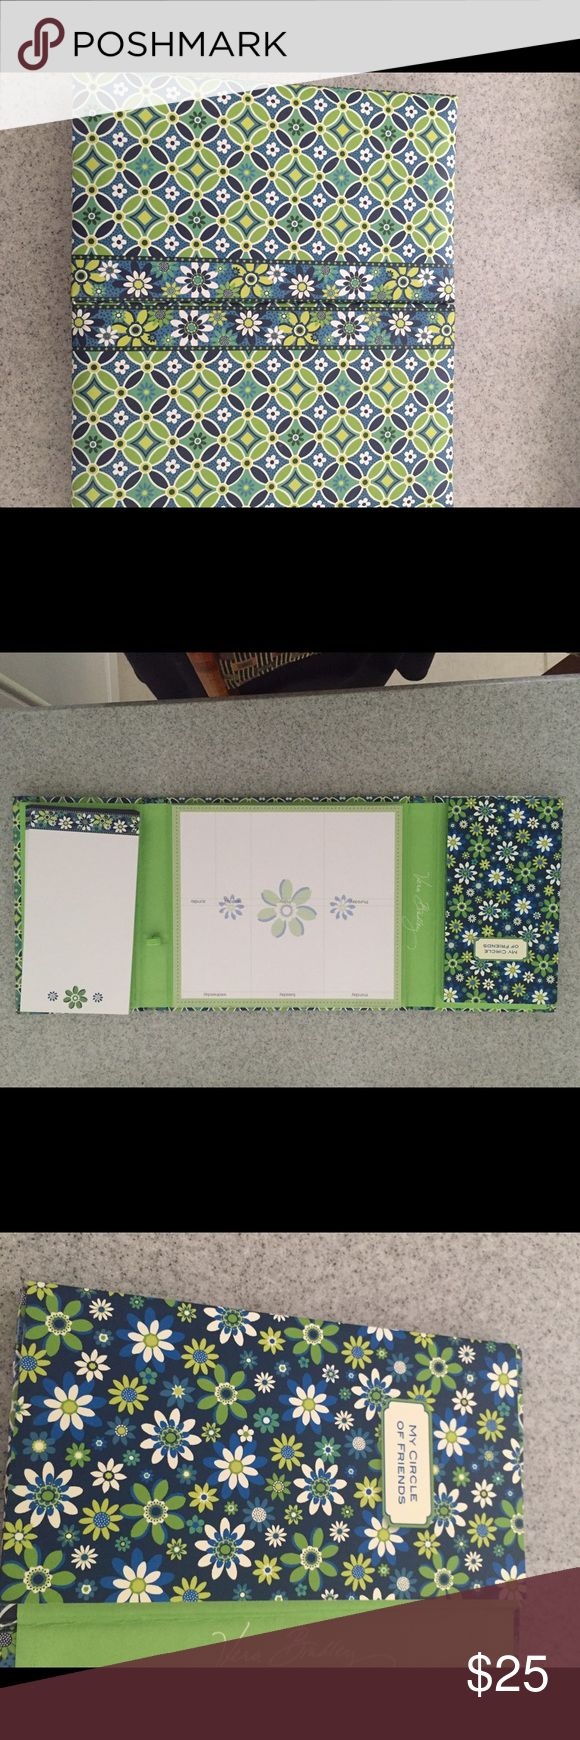 Vera Bradley planner Brand new Vera Bradley planner. Complete with notepad, weekly calendar, and address book. Offers welcome Vera Bradley Accessories